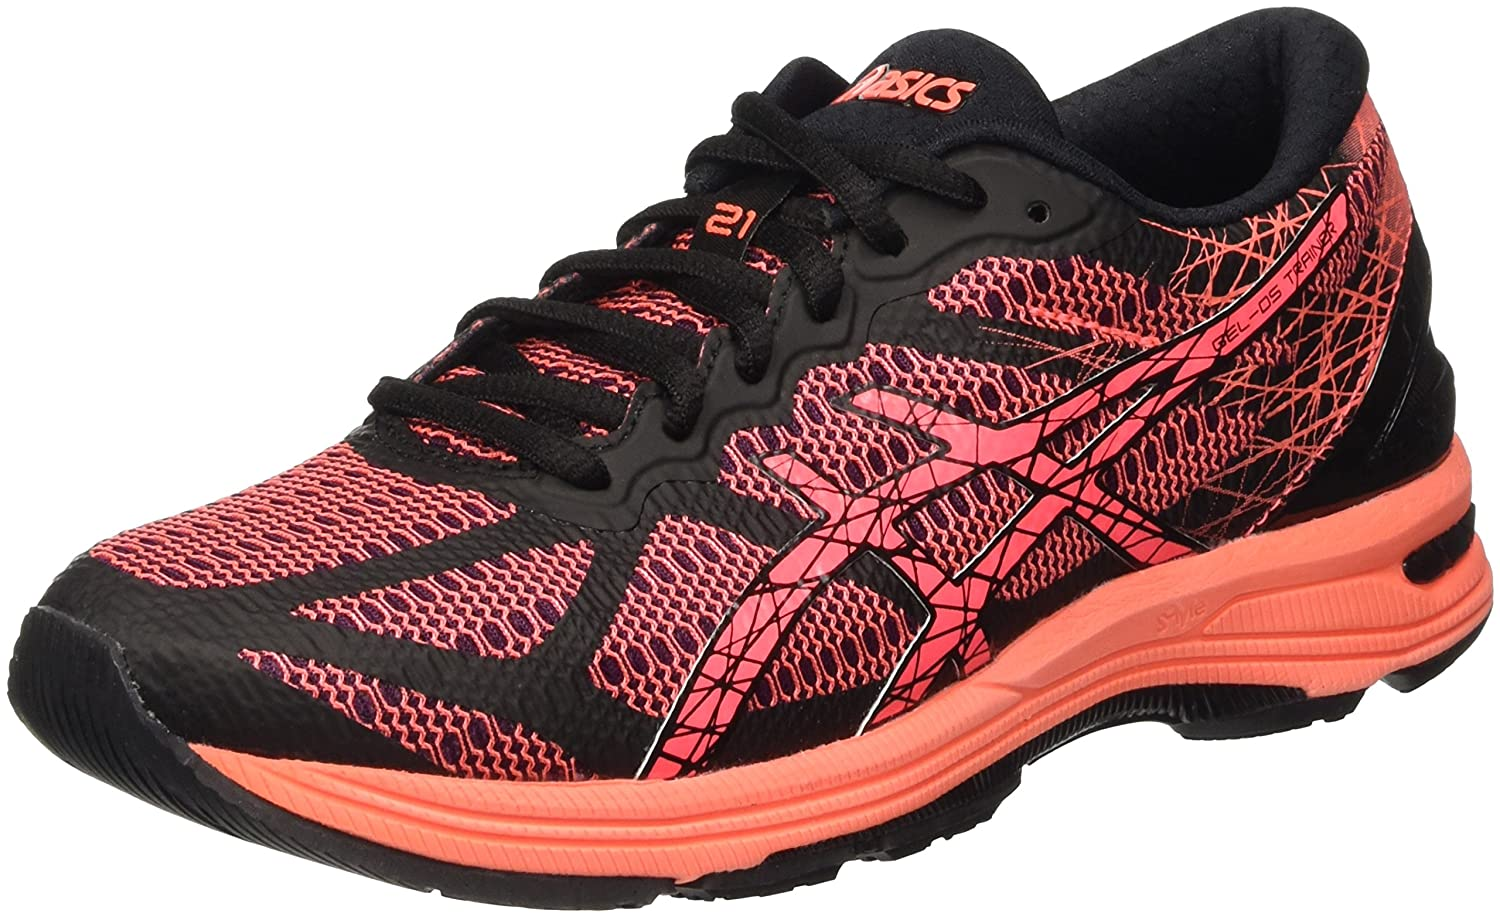 e3ee4faad ASICS GEL-DS TRAINER 21 Women's Running Shoes (T674N): Amazon.co.uk: Shoes  & Bags